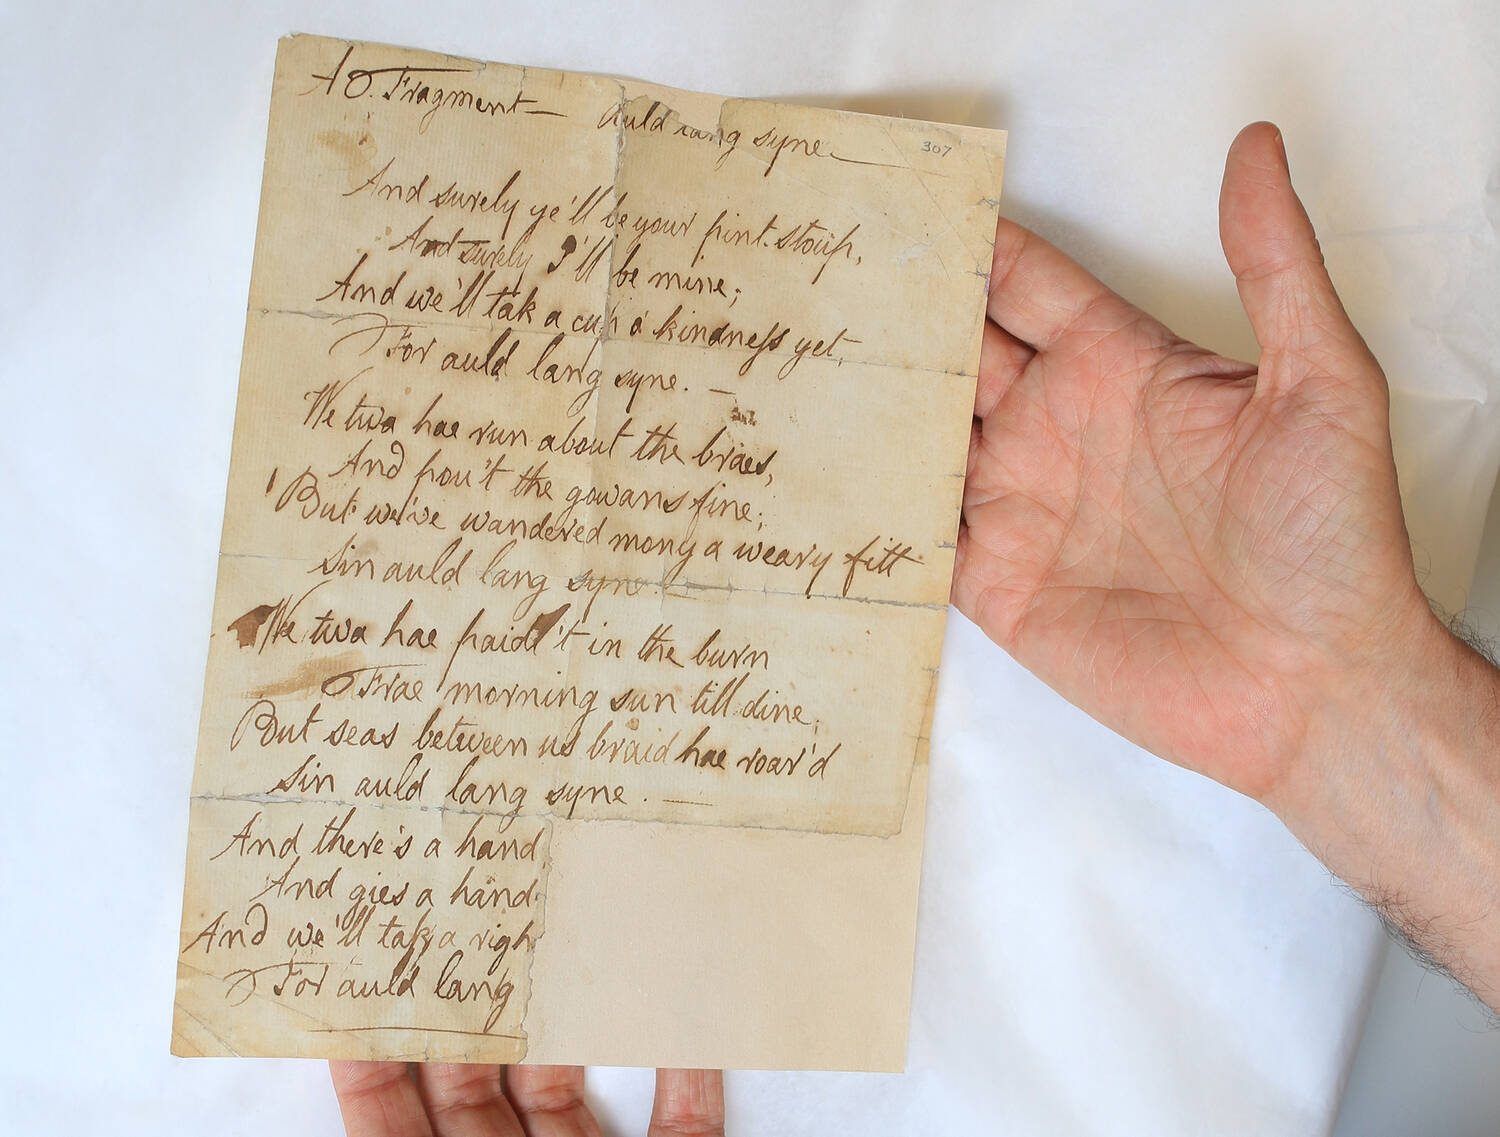 Two hands hold out a page of Burns's handwritten manuscript for 'Auld lang syne'.